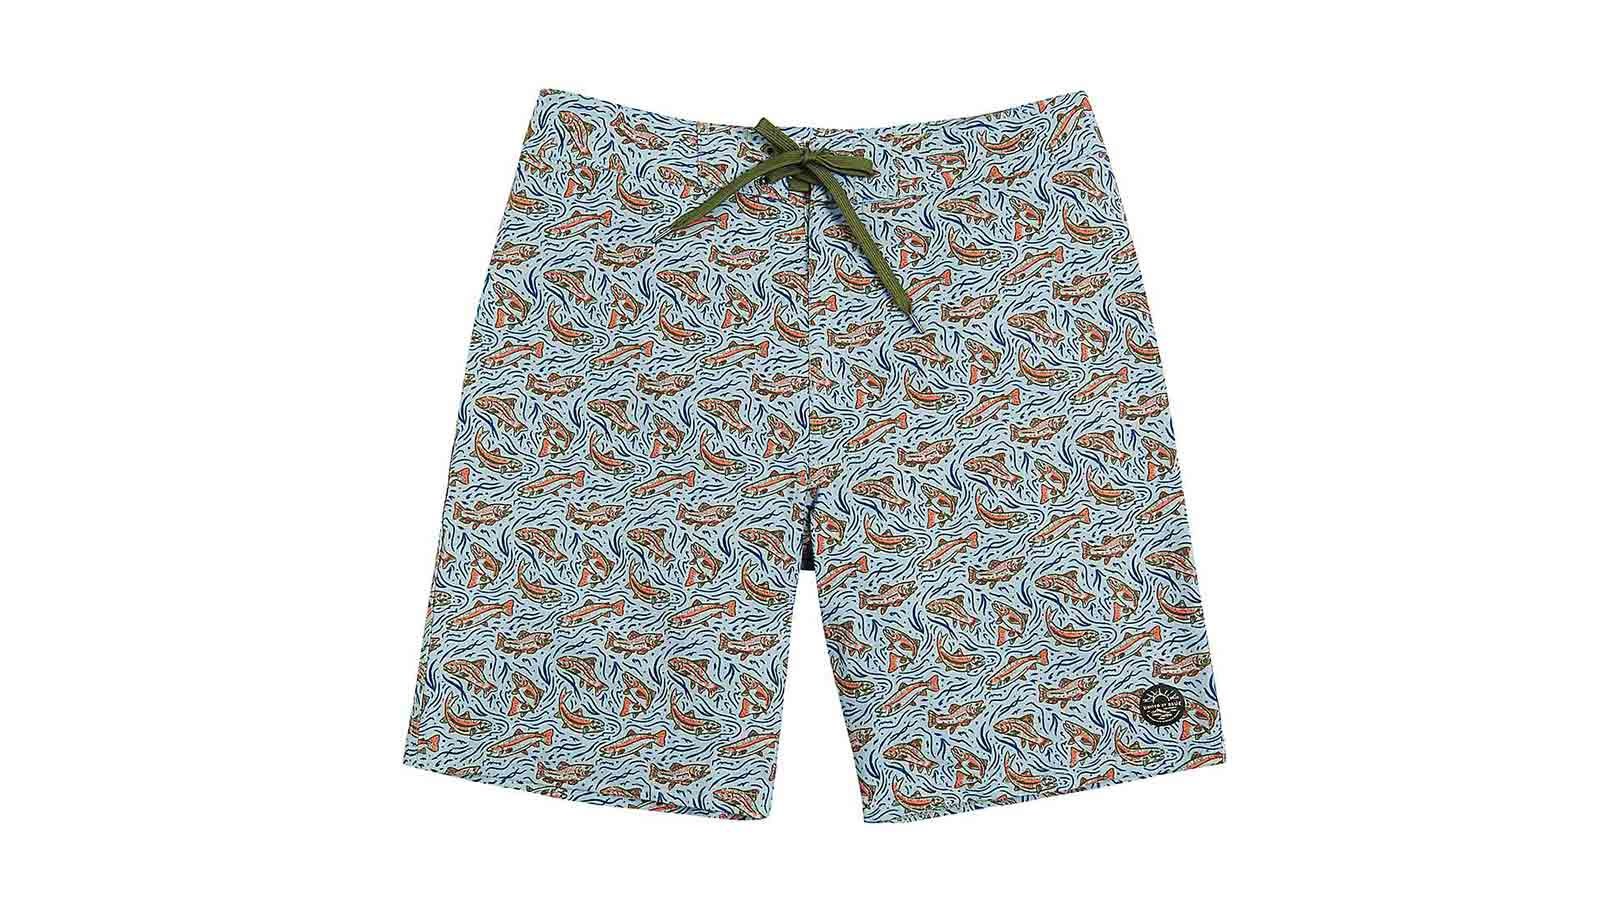 277fae1d0d The Best Swim Trunks for Men for Summer and the Beach